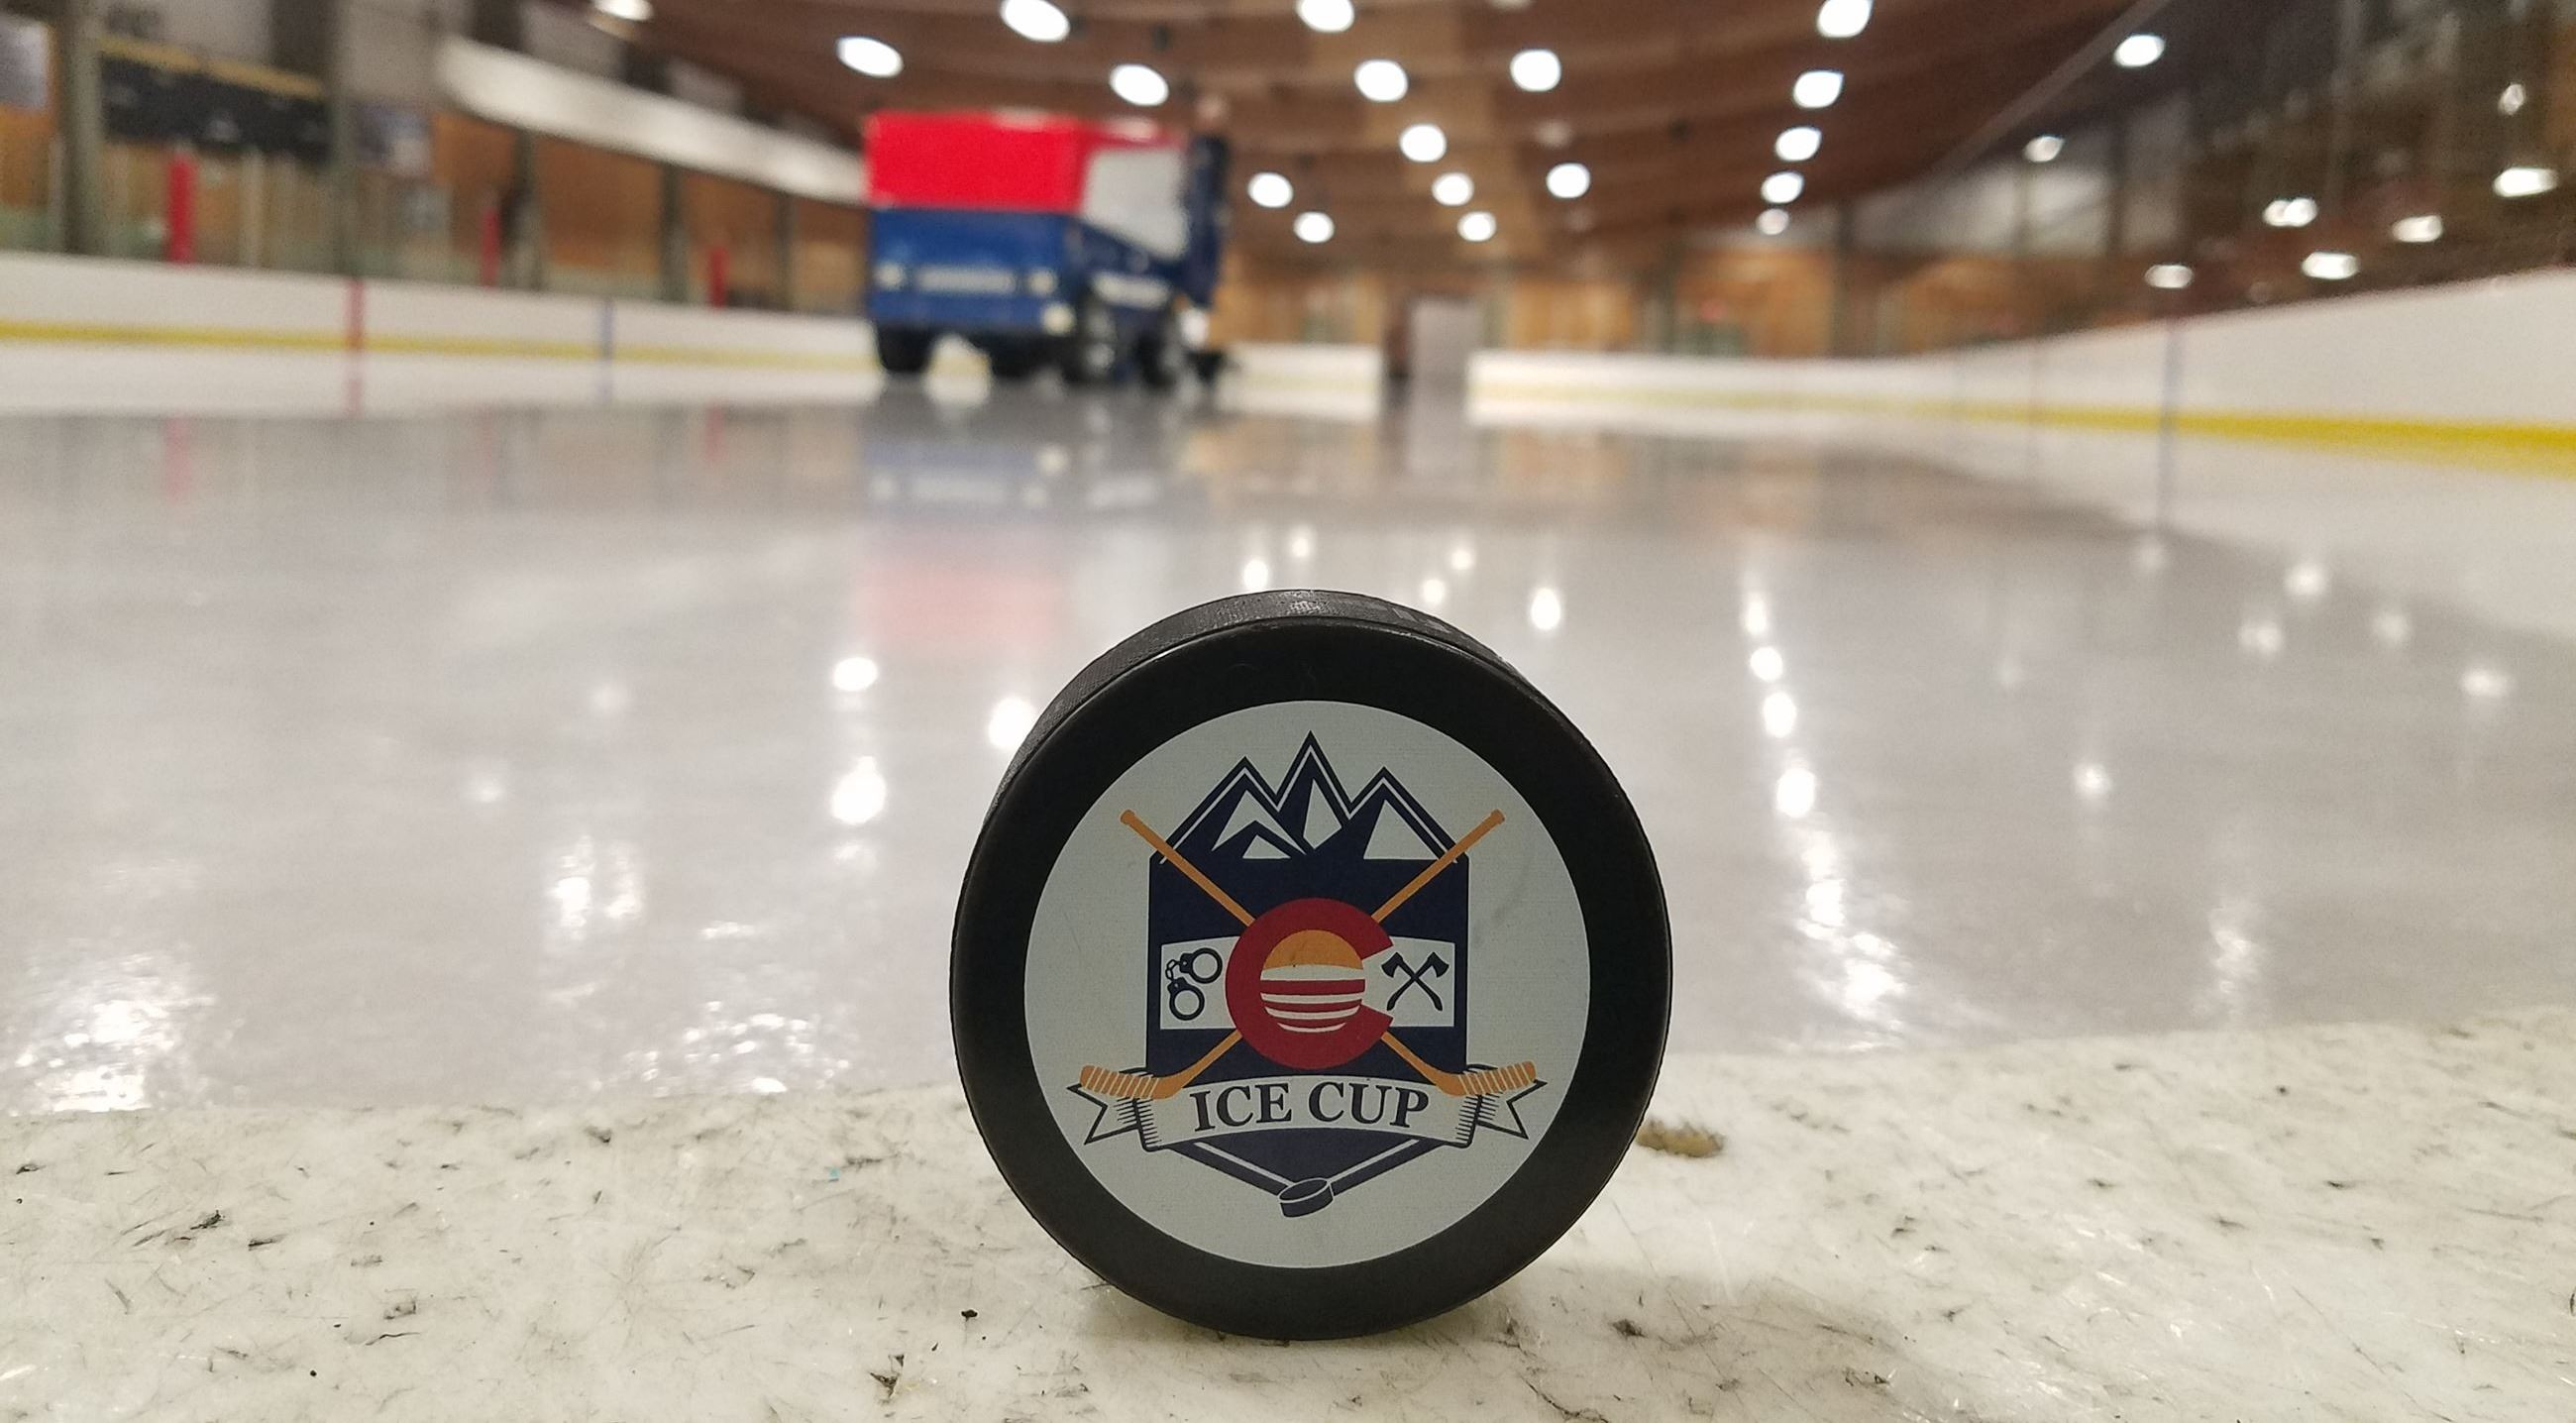 Ice Cup puck and zamboni pic